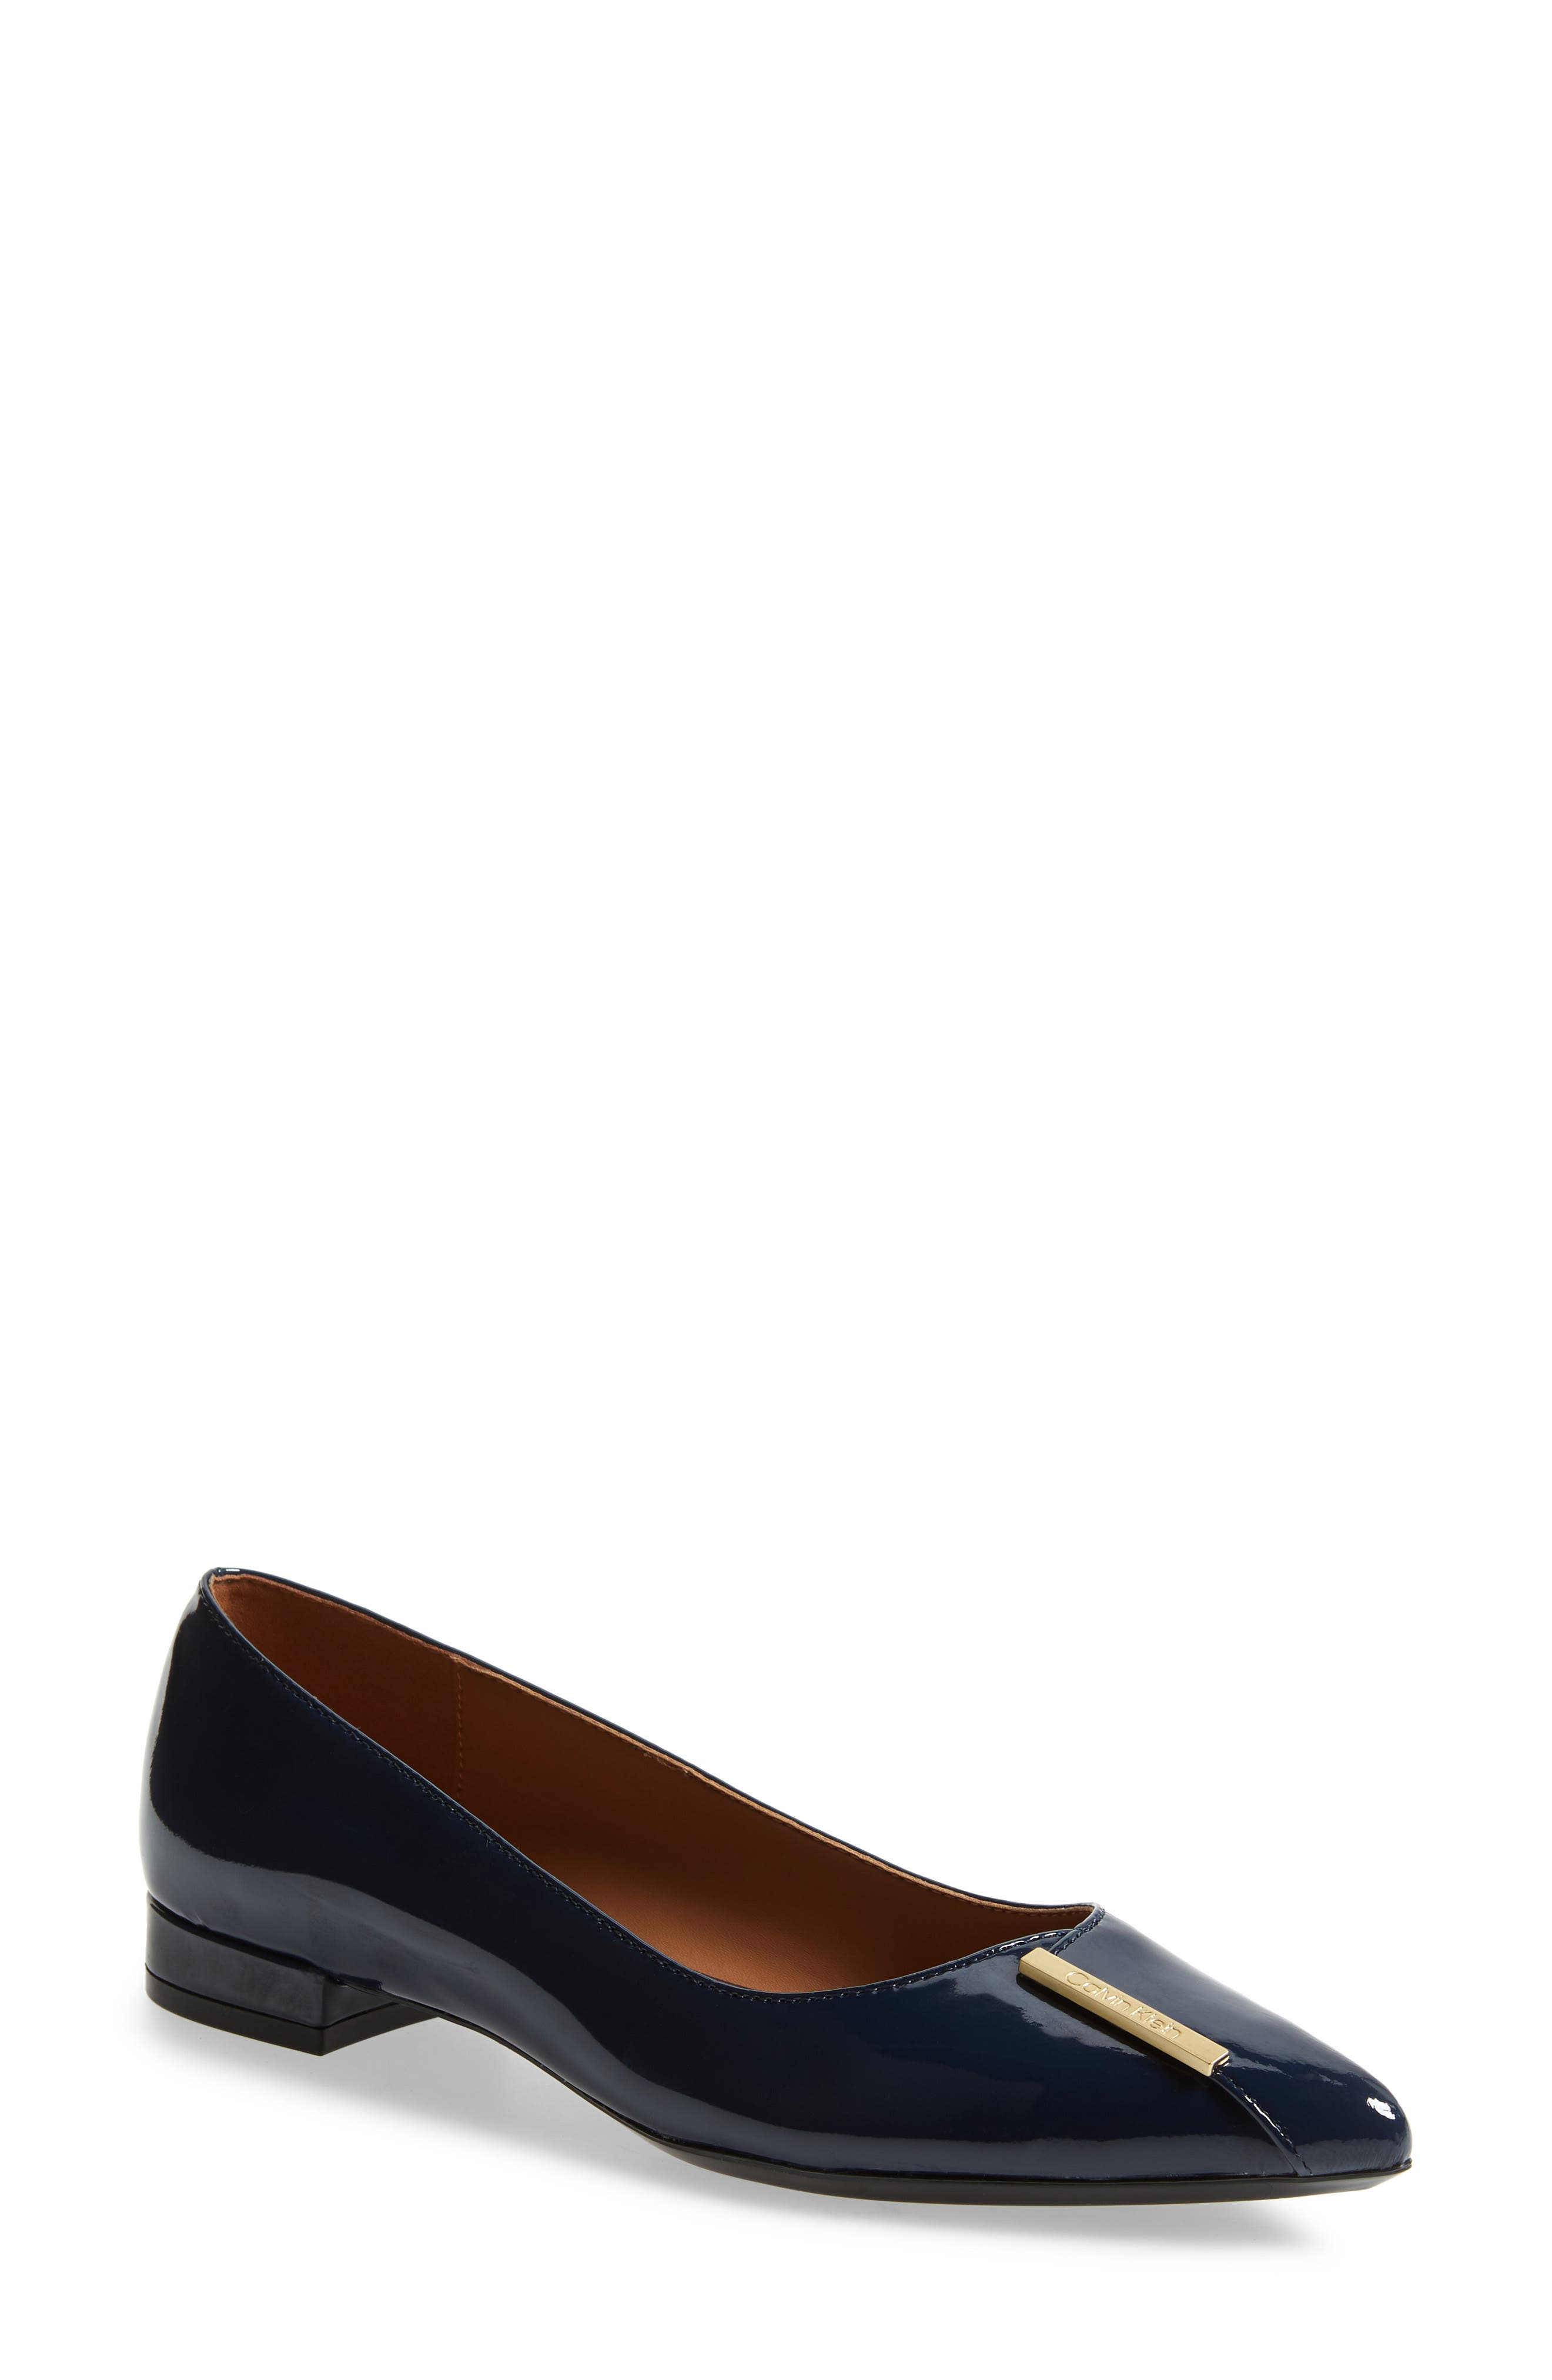 Arline Pointy Toe Flat,                             Main thumbnail 1, color,                             NAVY PATENT LEATHER